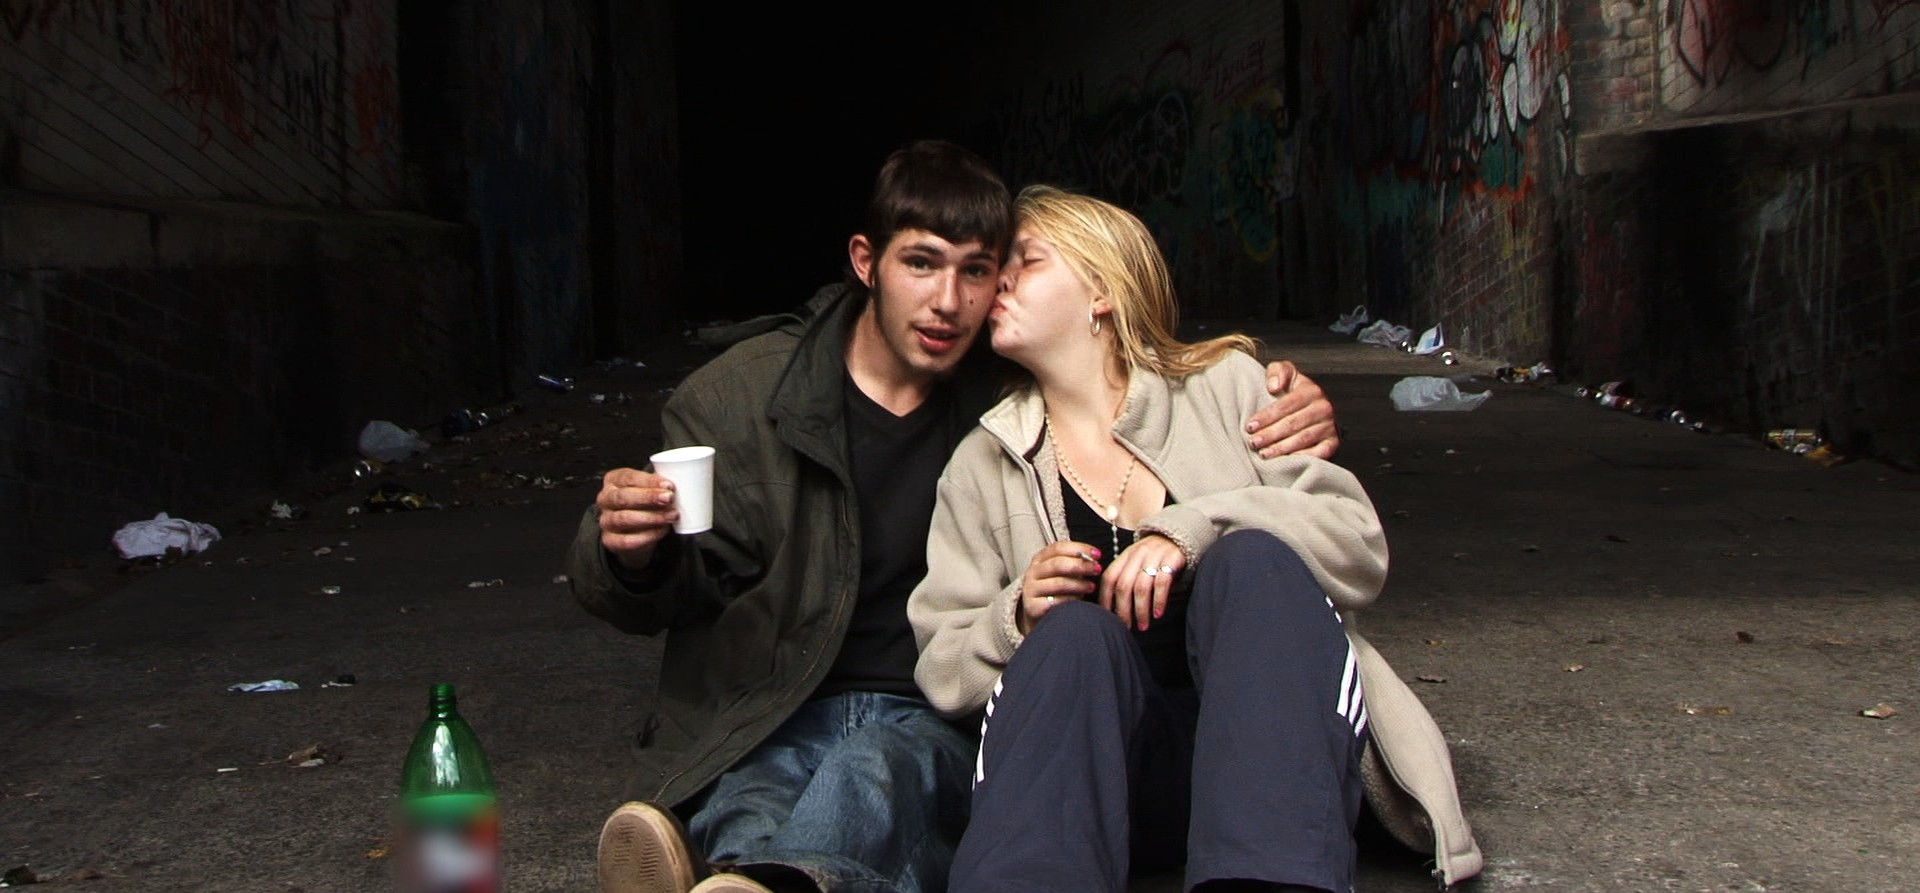 Swansea Love Story: Teenage Heroin Epidemic